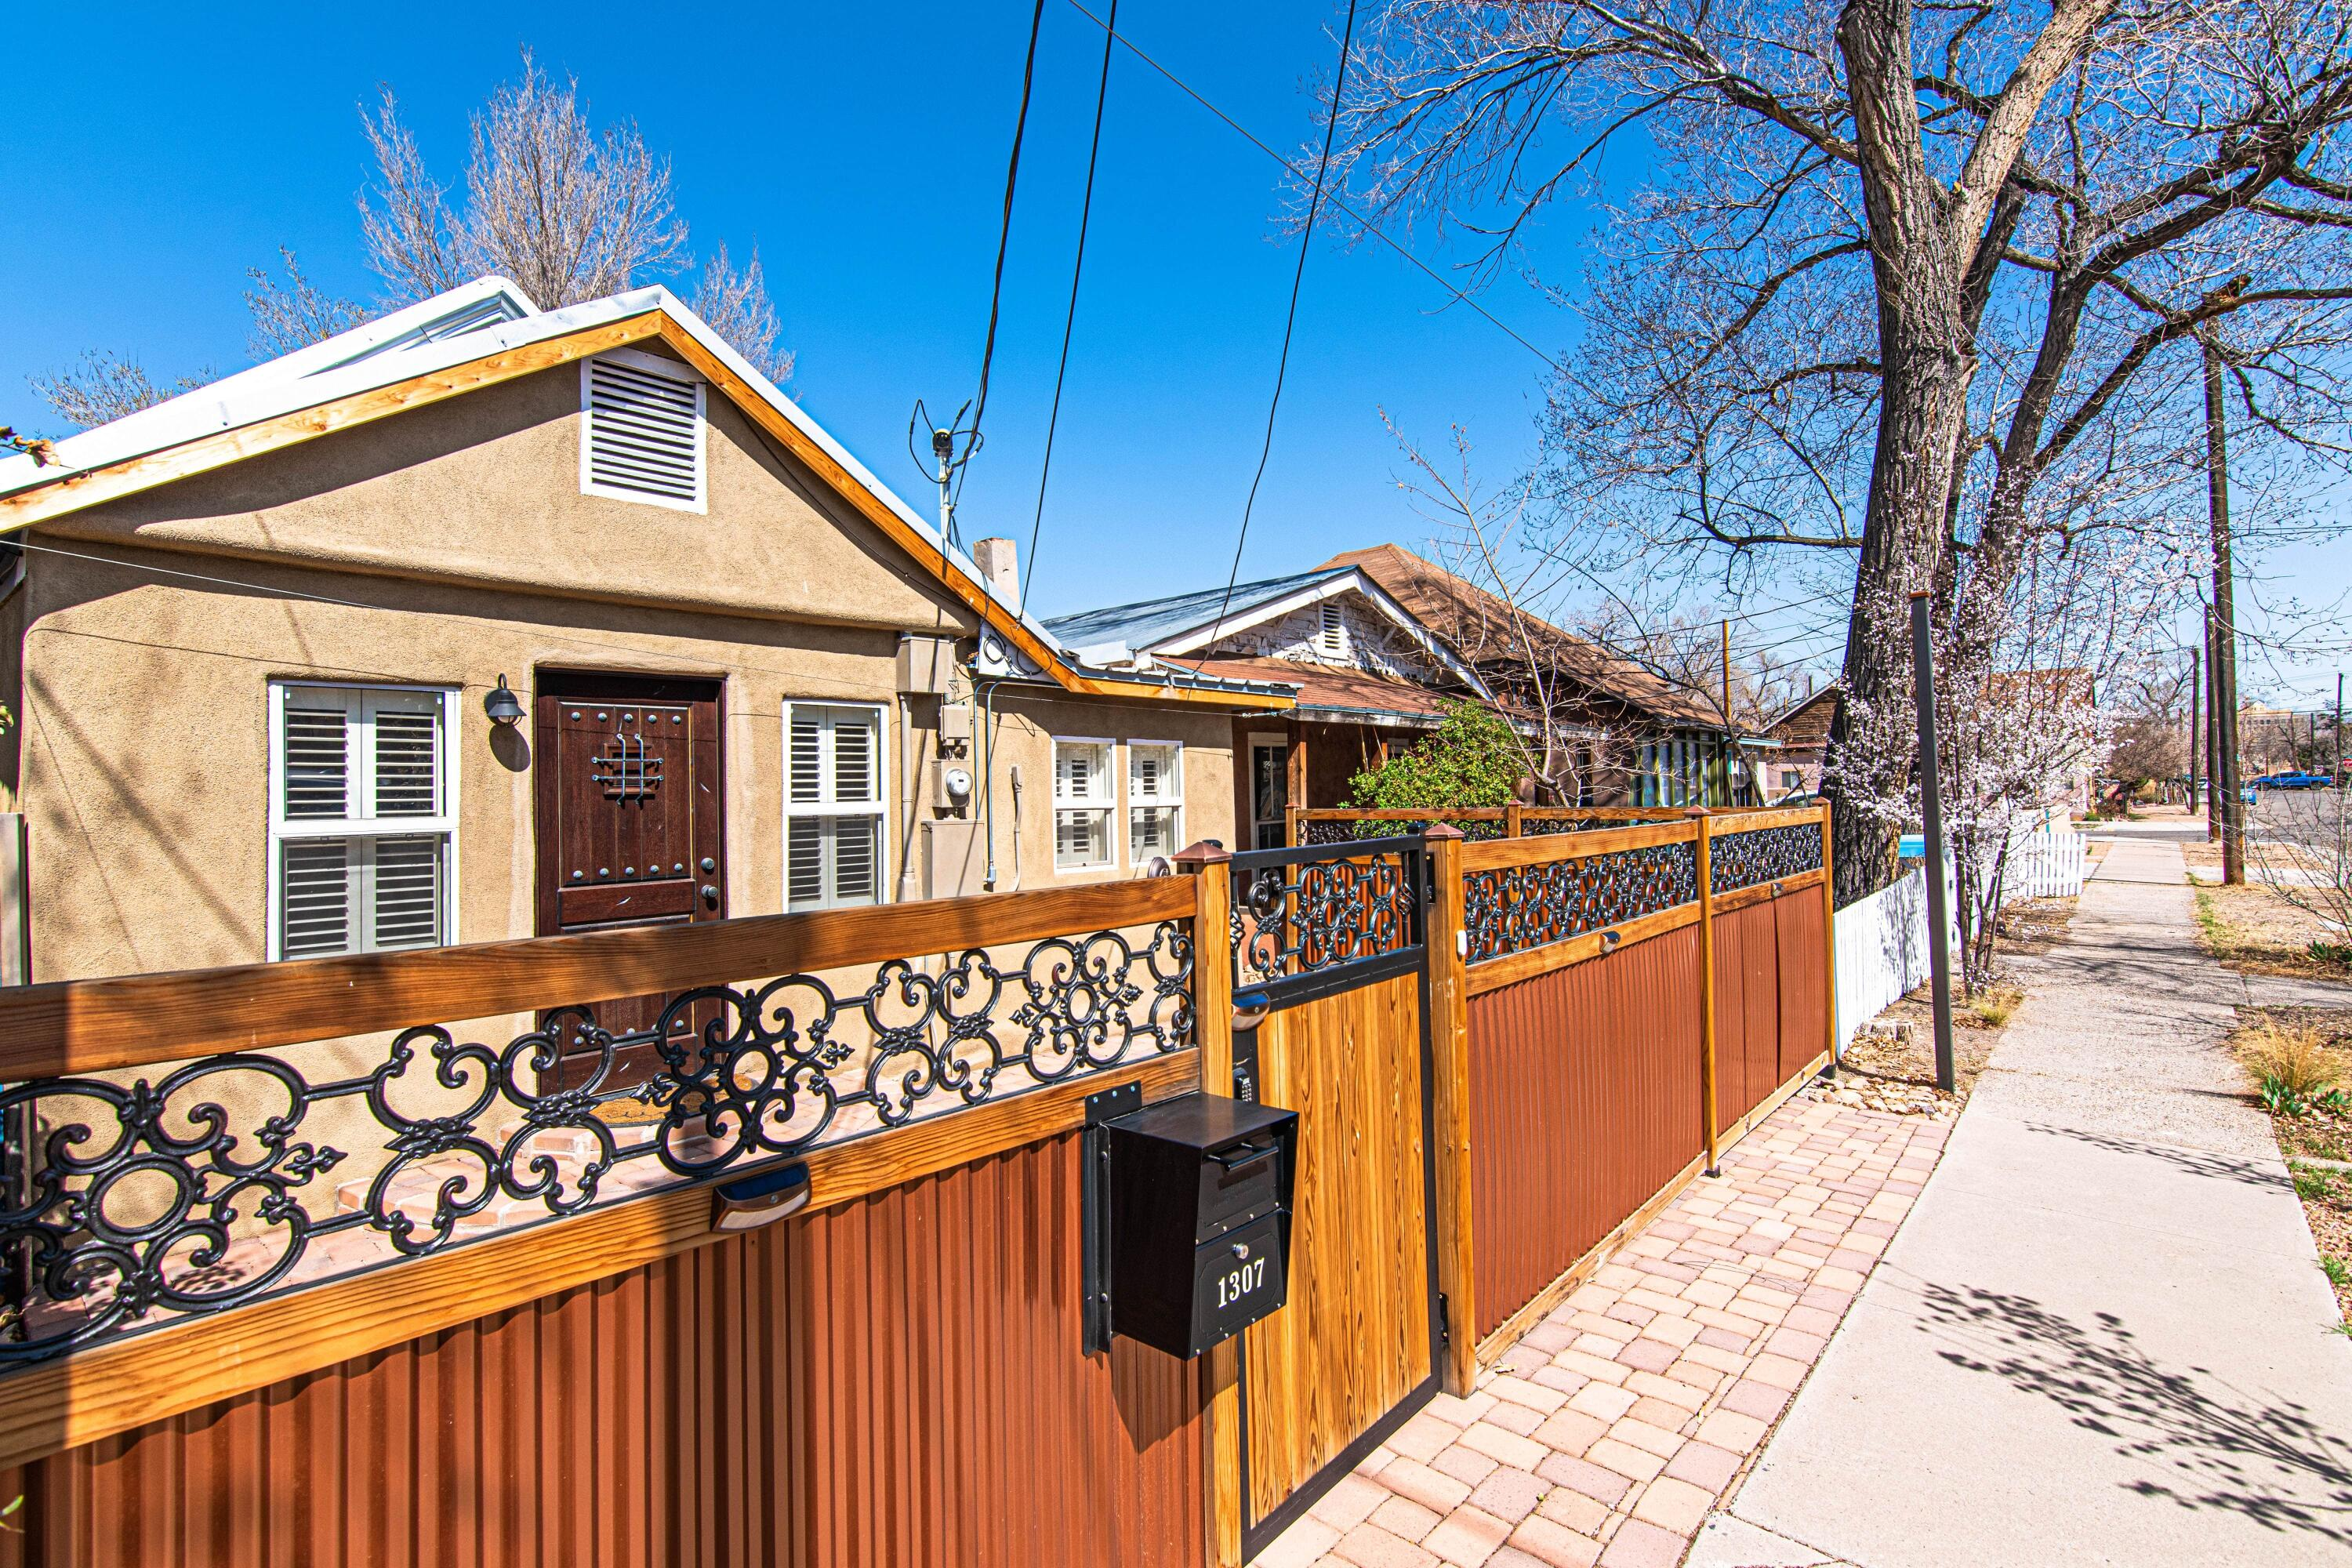 In a market where properties sell in mere hours, rush out to check out this desirable downtown 1930s home that is within walking distance to Old Town and the Sawmill District.  This picturesque two-bedroom dwelling has upgraded refrigerated air and furnace (2020), newer water heater (2018), newer stucco (2018) updated waterproof flooring, fresh paint (2021) and custom cabinetry (2018) in the foyer & master bedroom.  Improvements are finished off with new barn-style doors (2020), new exterior doors and wall-to-wall front yard landscaping.  The home is on an extended lot with backyard access and I-40 is less than one-mile away.  Repairs being completed. As-Is.